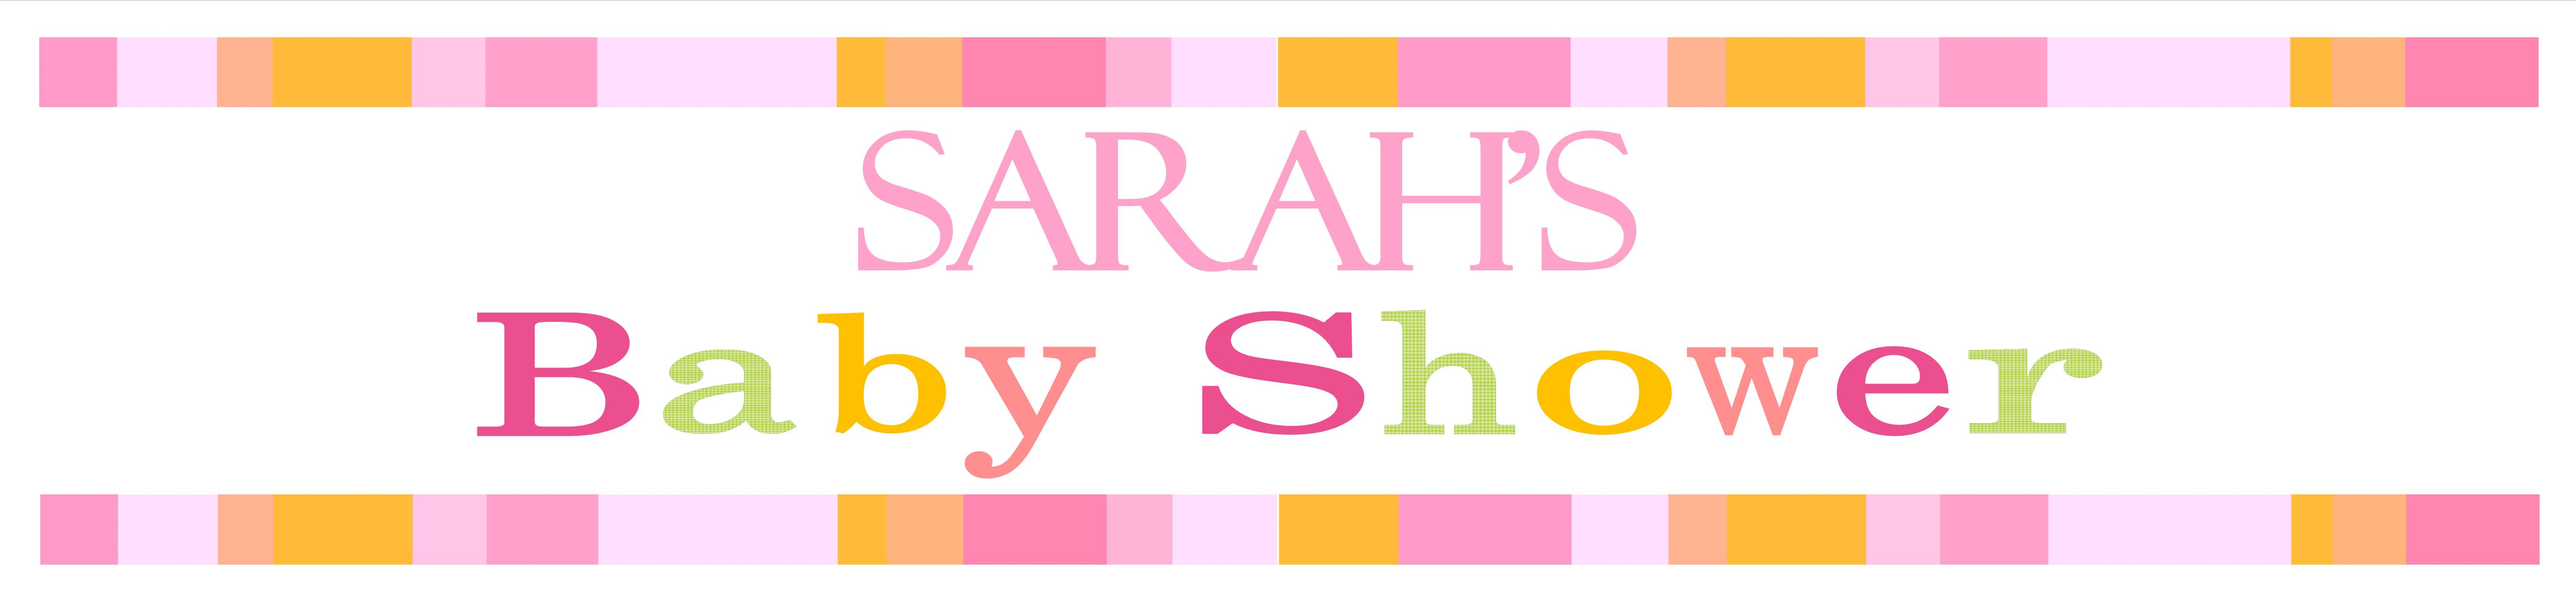 Personalised pink baby shower banner design 3 Baby shower banners